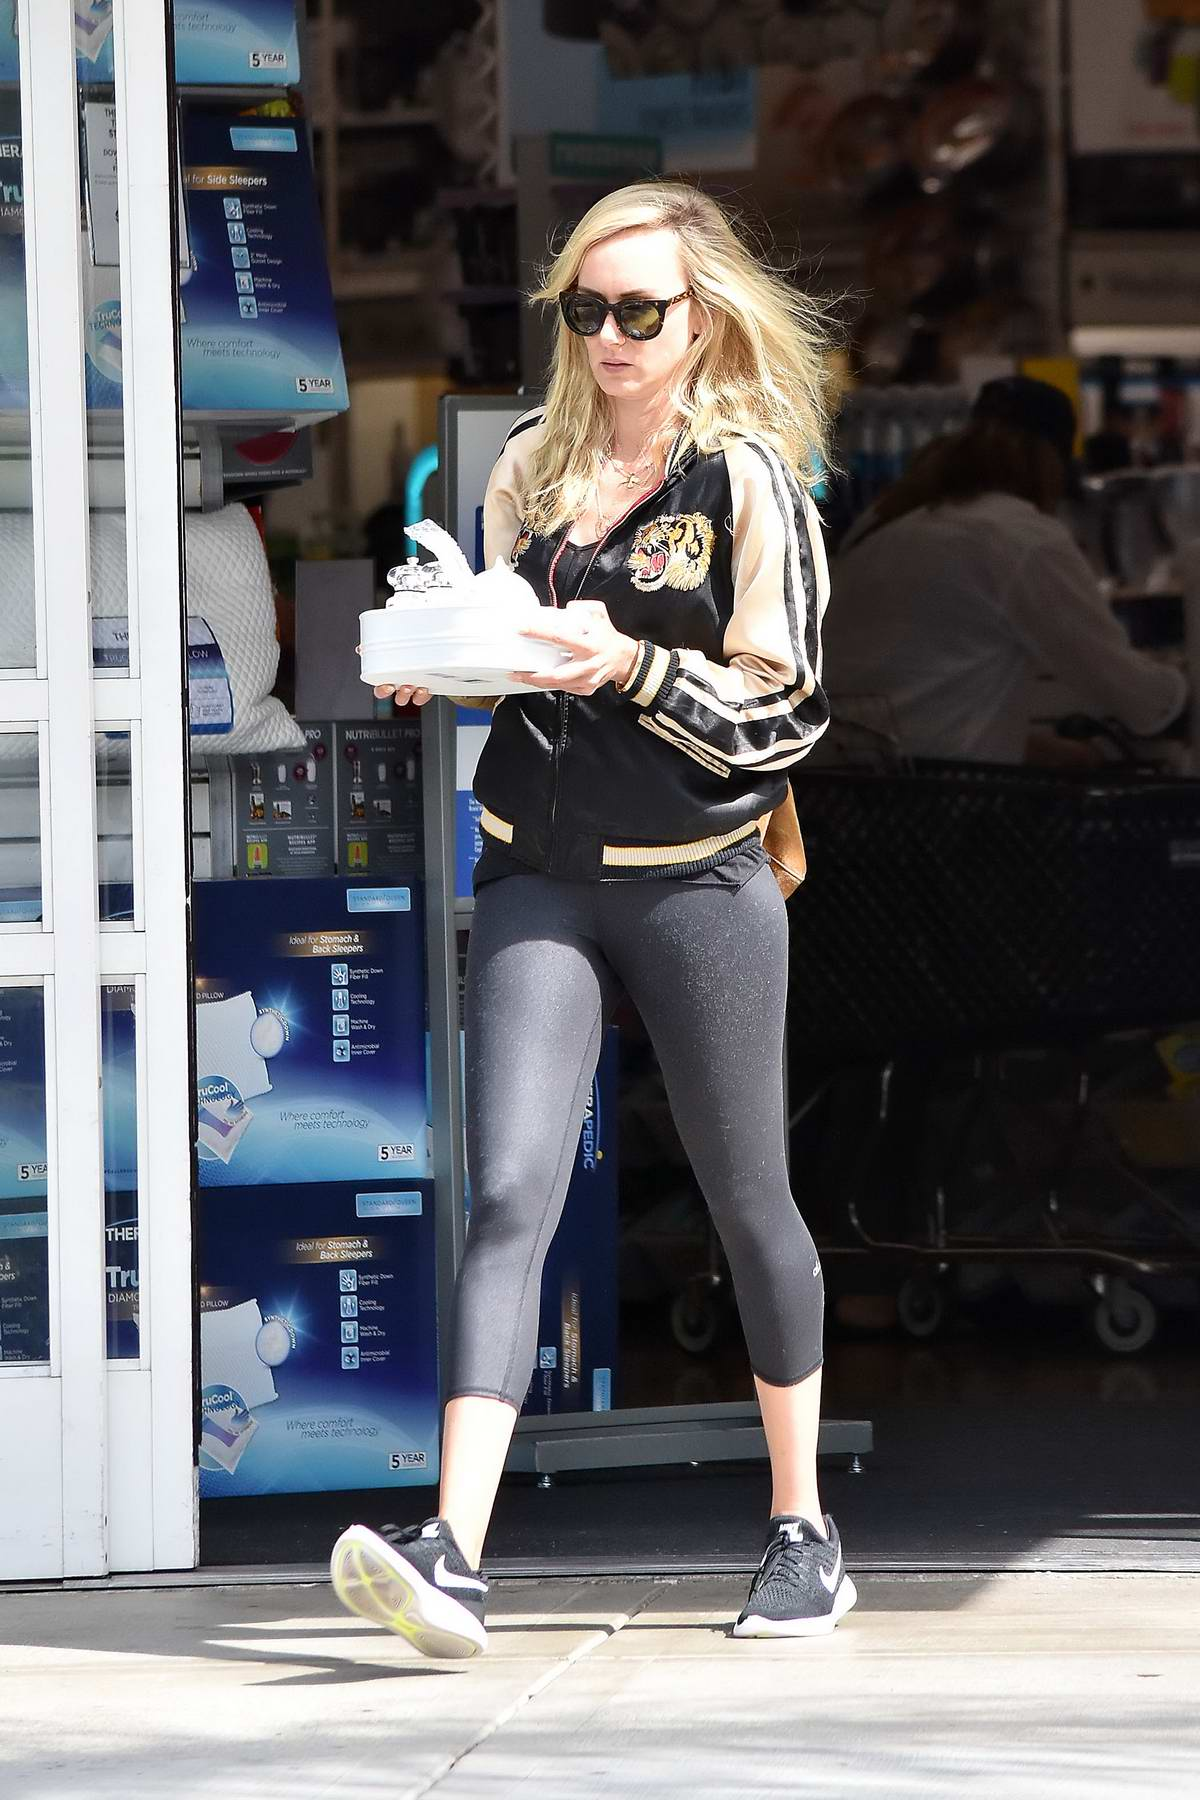 Kimberly Stewart shopping at Bed Bath and Beyond in Los Angeles